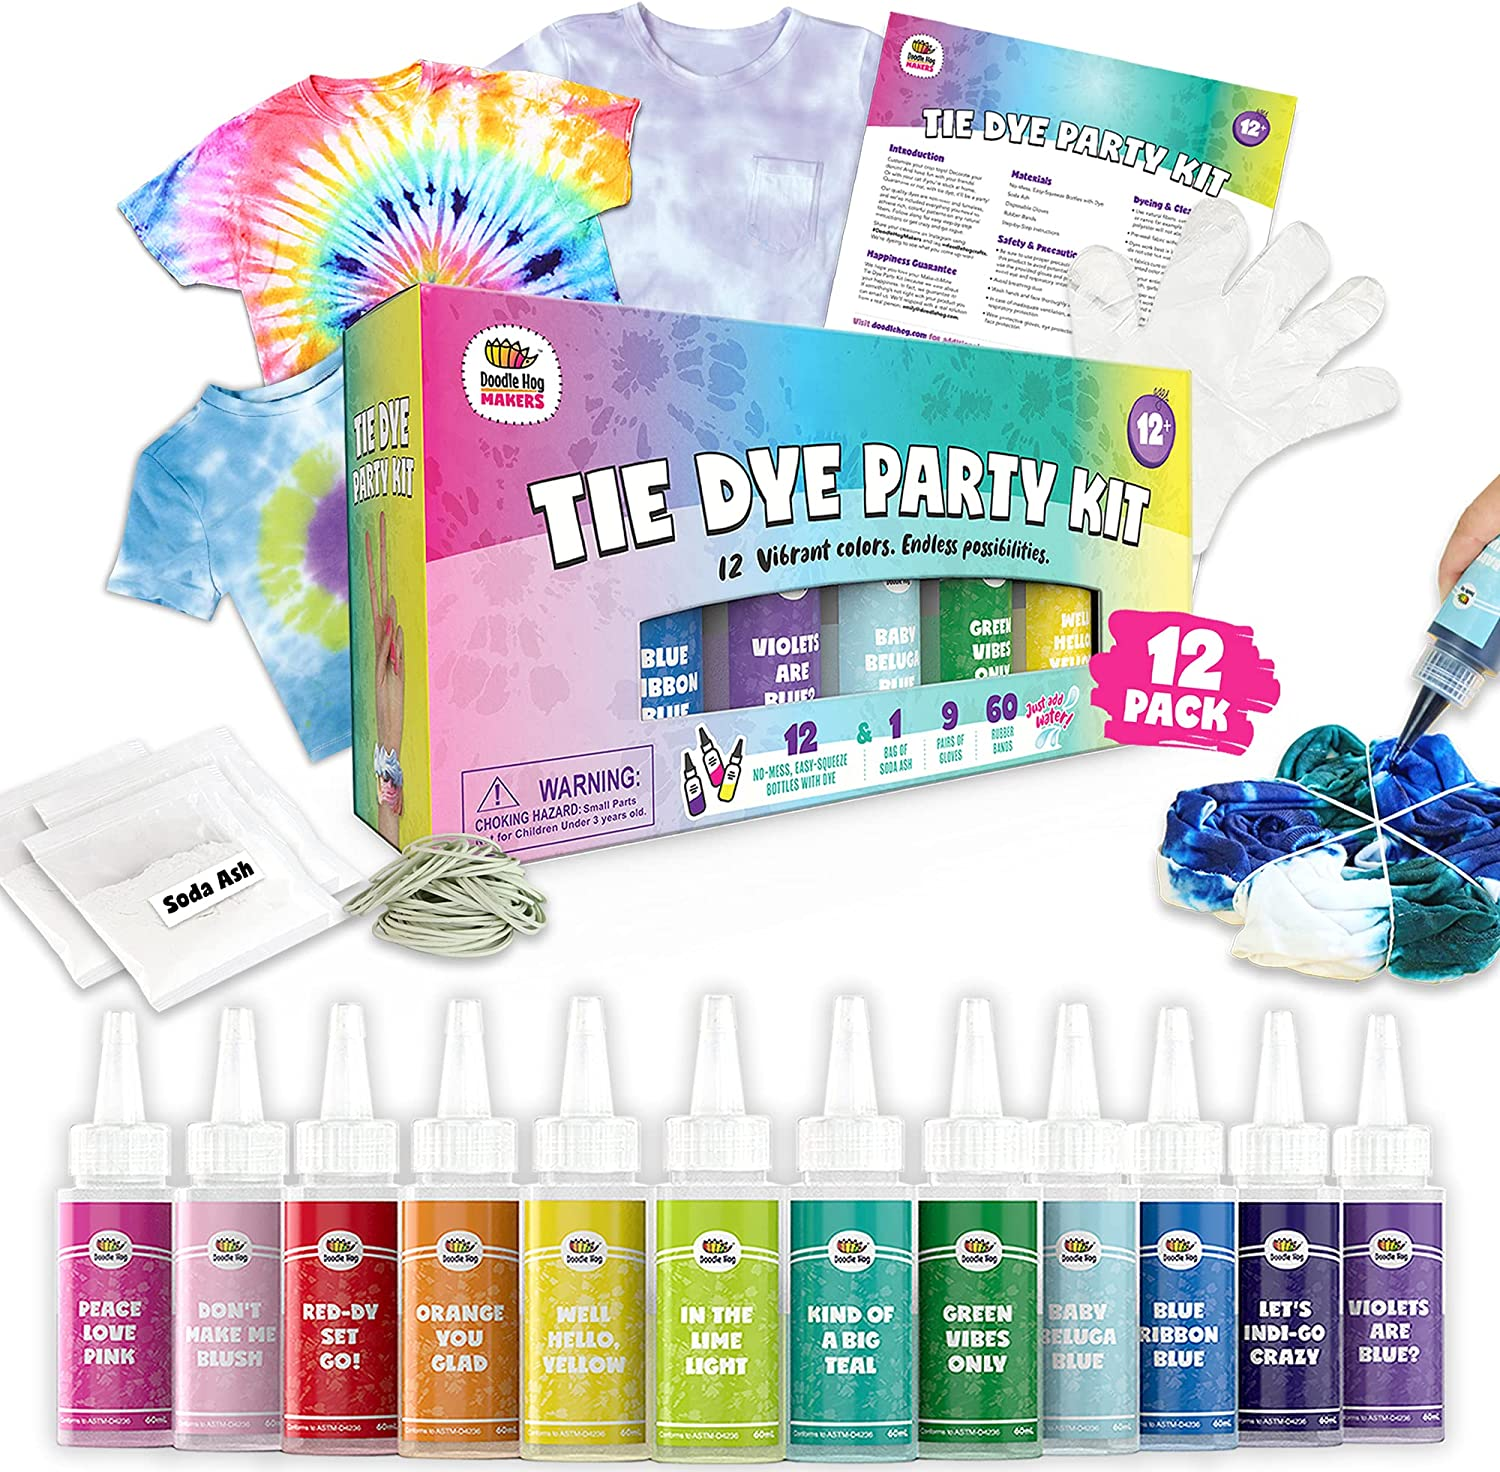 Doodlehog Easy Tie Dye Party Kit for Kids, Adults, and Groups. C